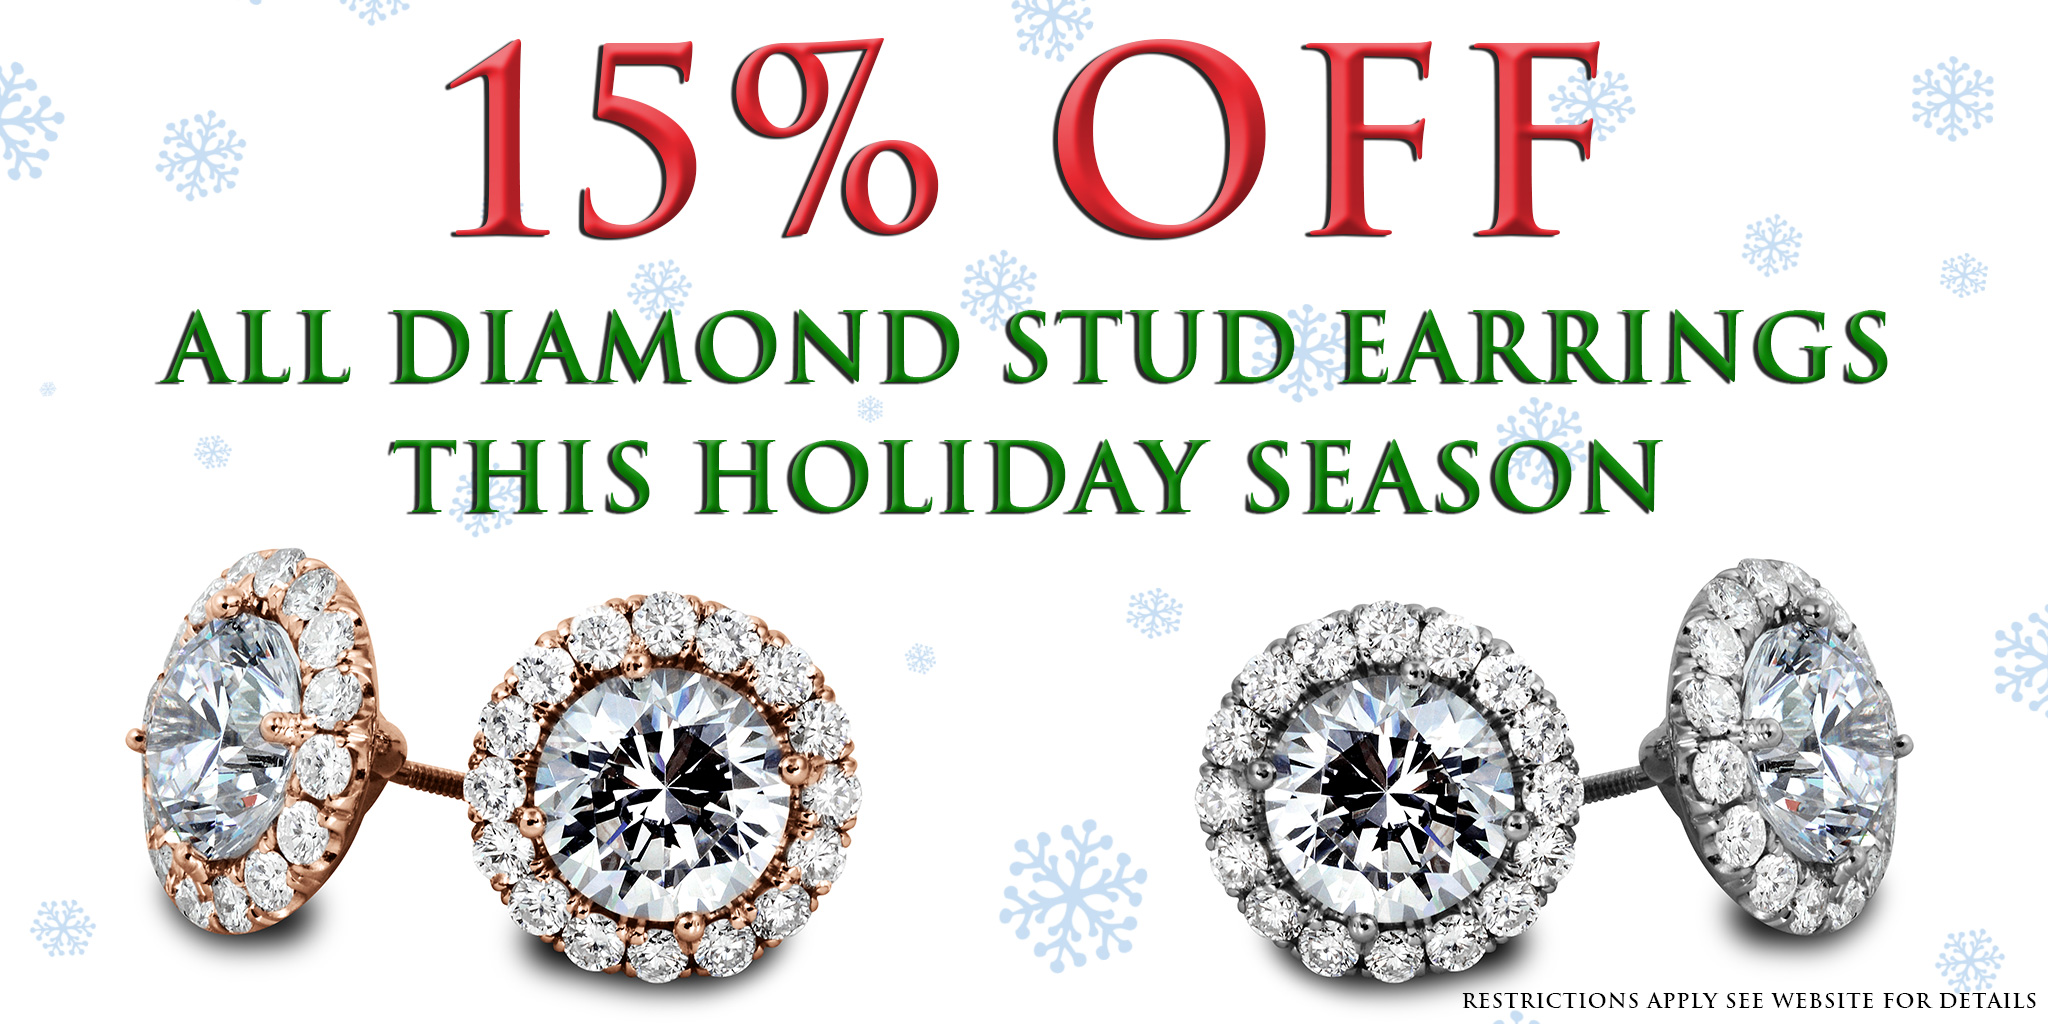 All Diamond Stud Earrings 15 Percent Off South Bay Gold